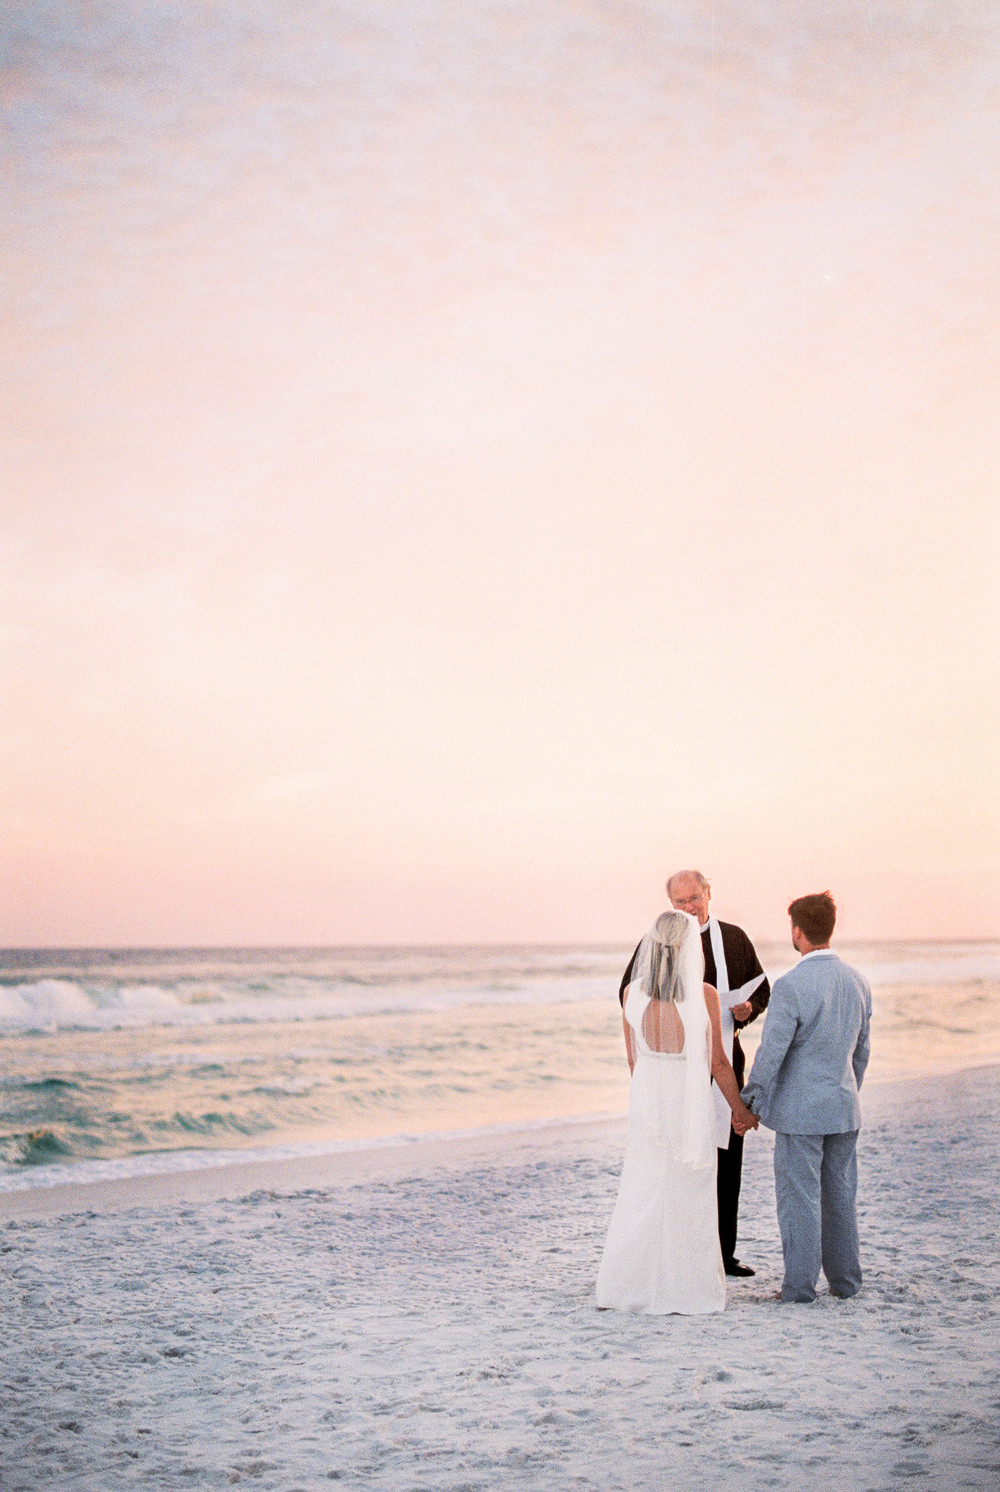 Seaside Wedding Photography 1-12.jpg